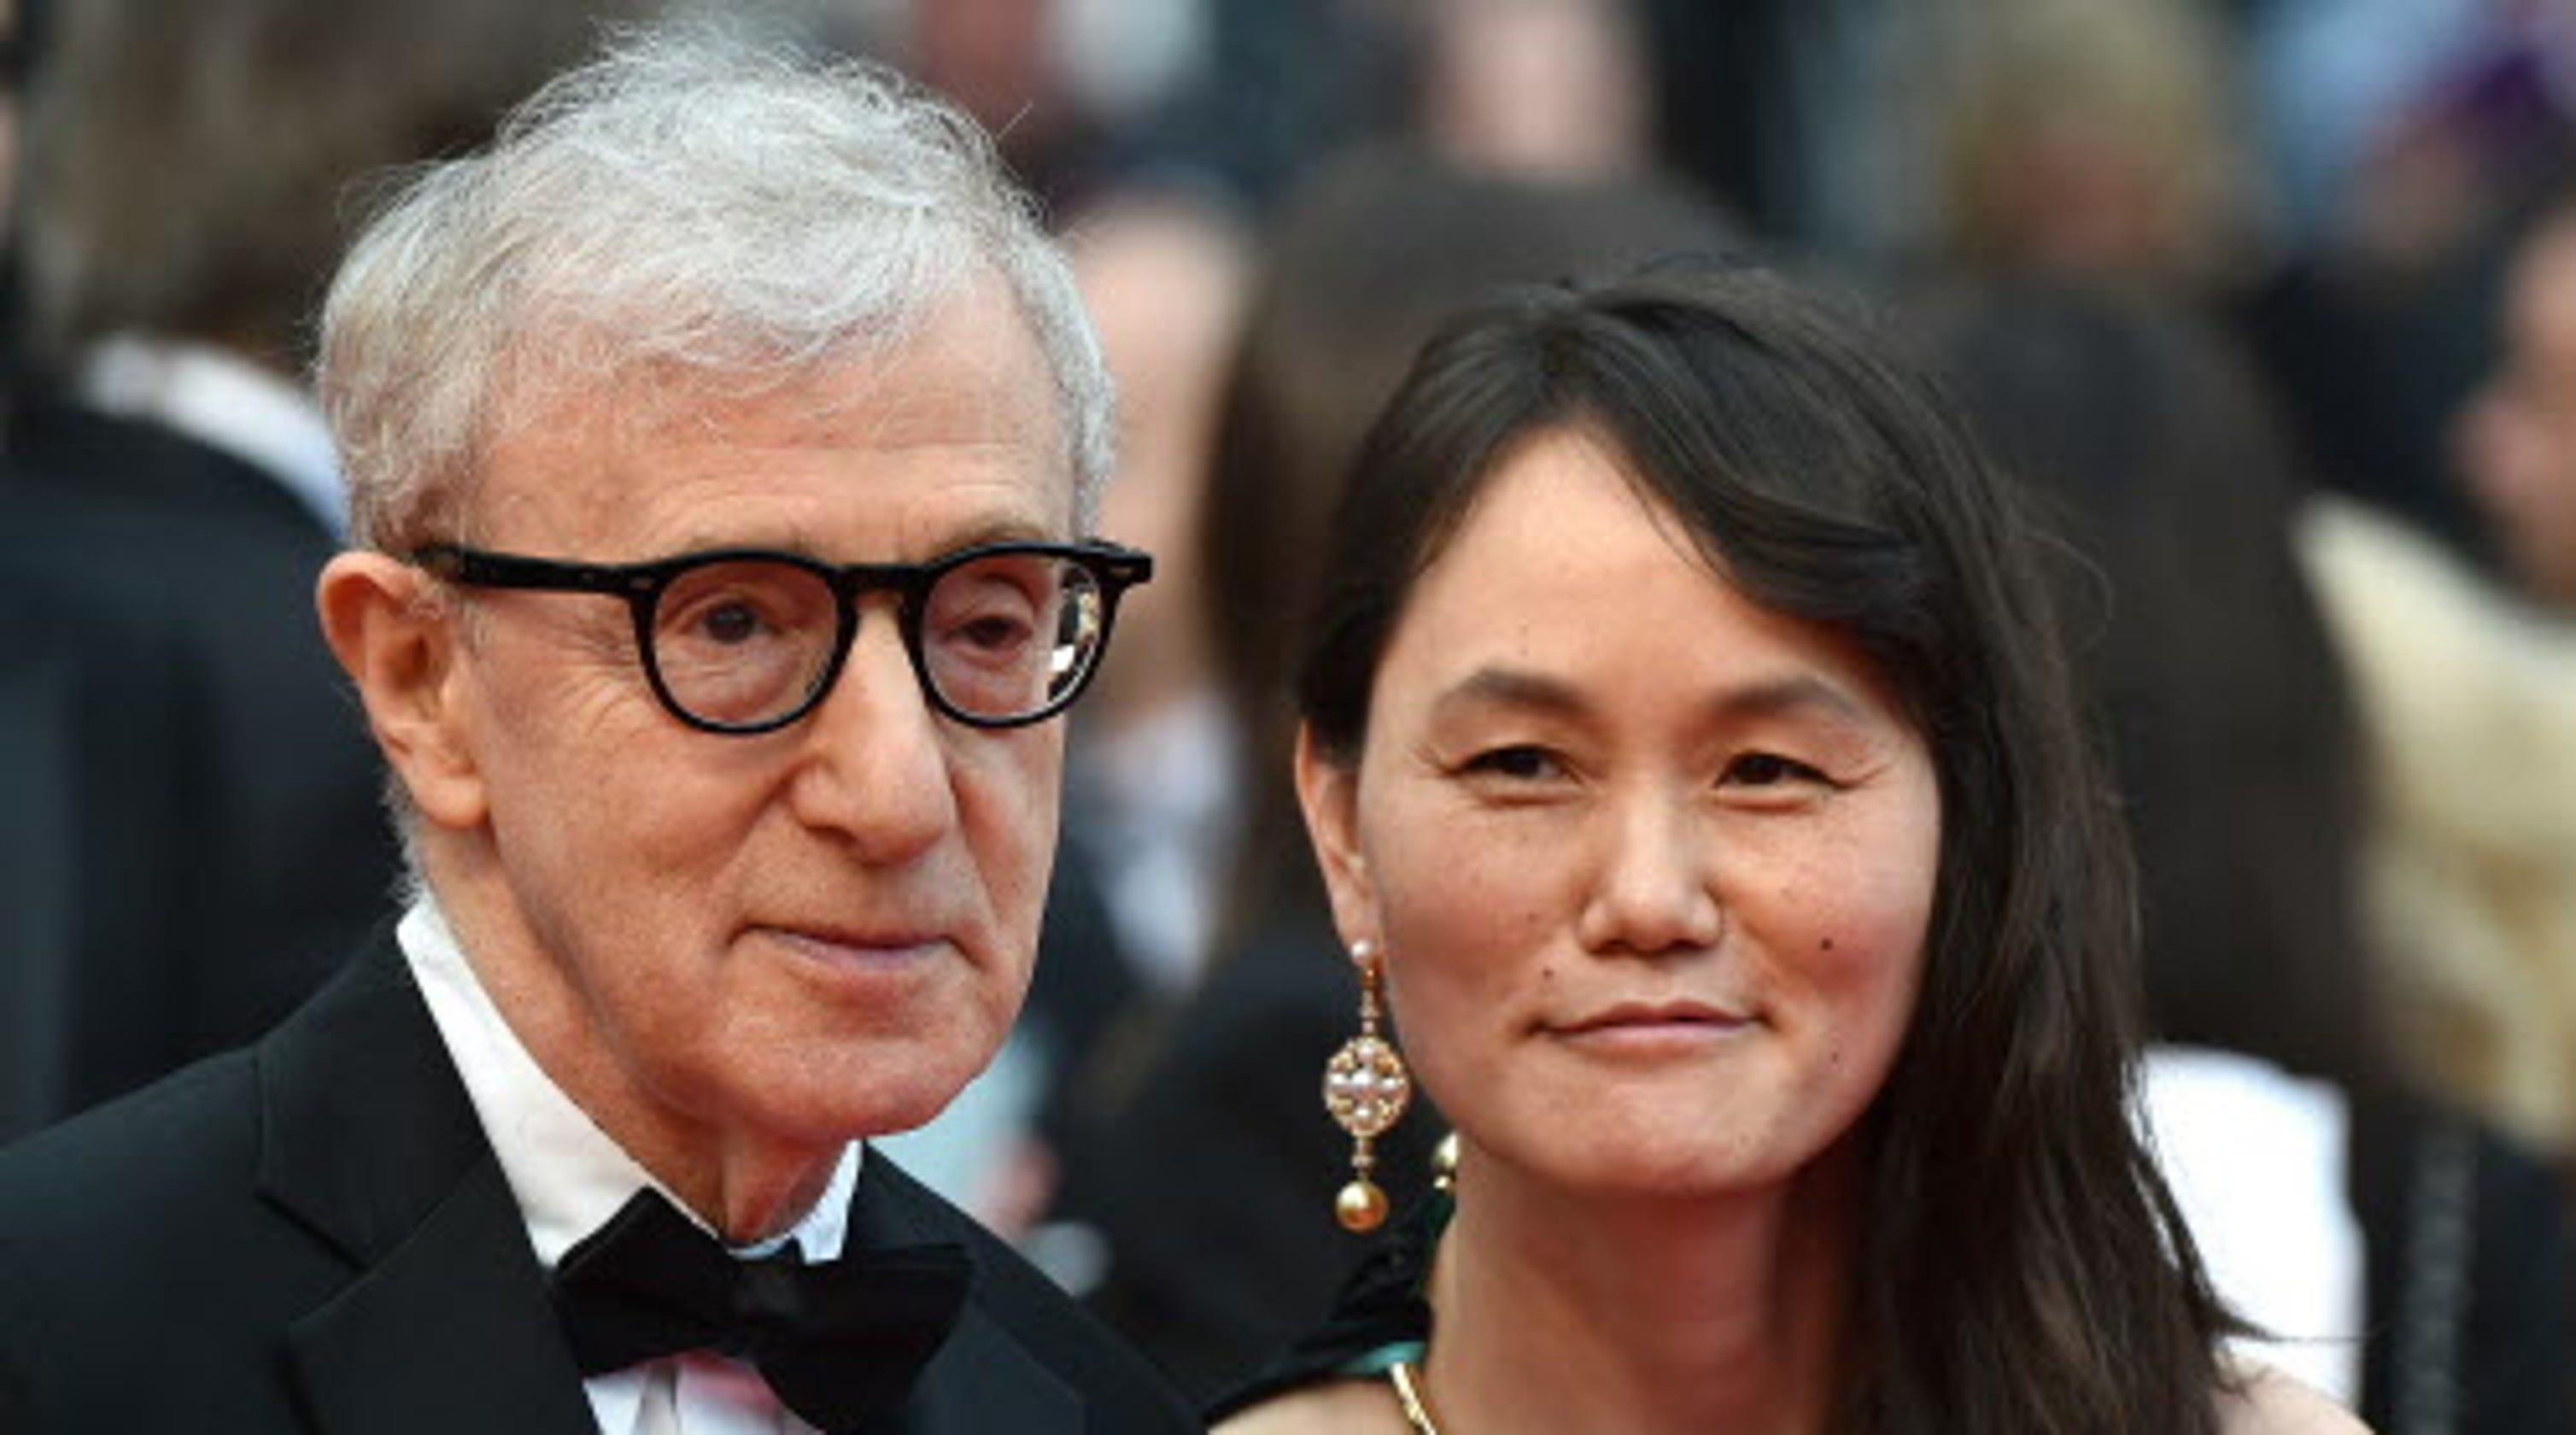 Soon Yi Previn Speaks Out About Claims Against Woody Allen Abuse By Mia Farrow And MeToo